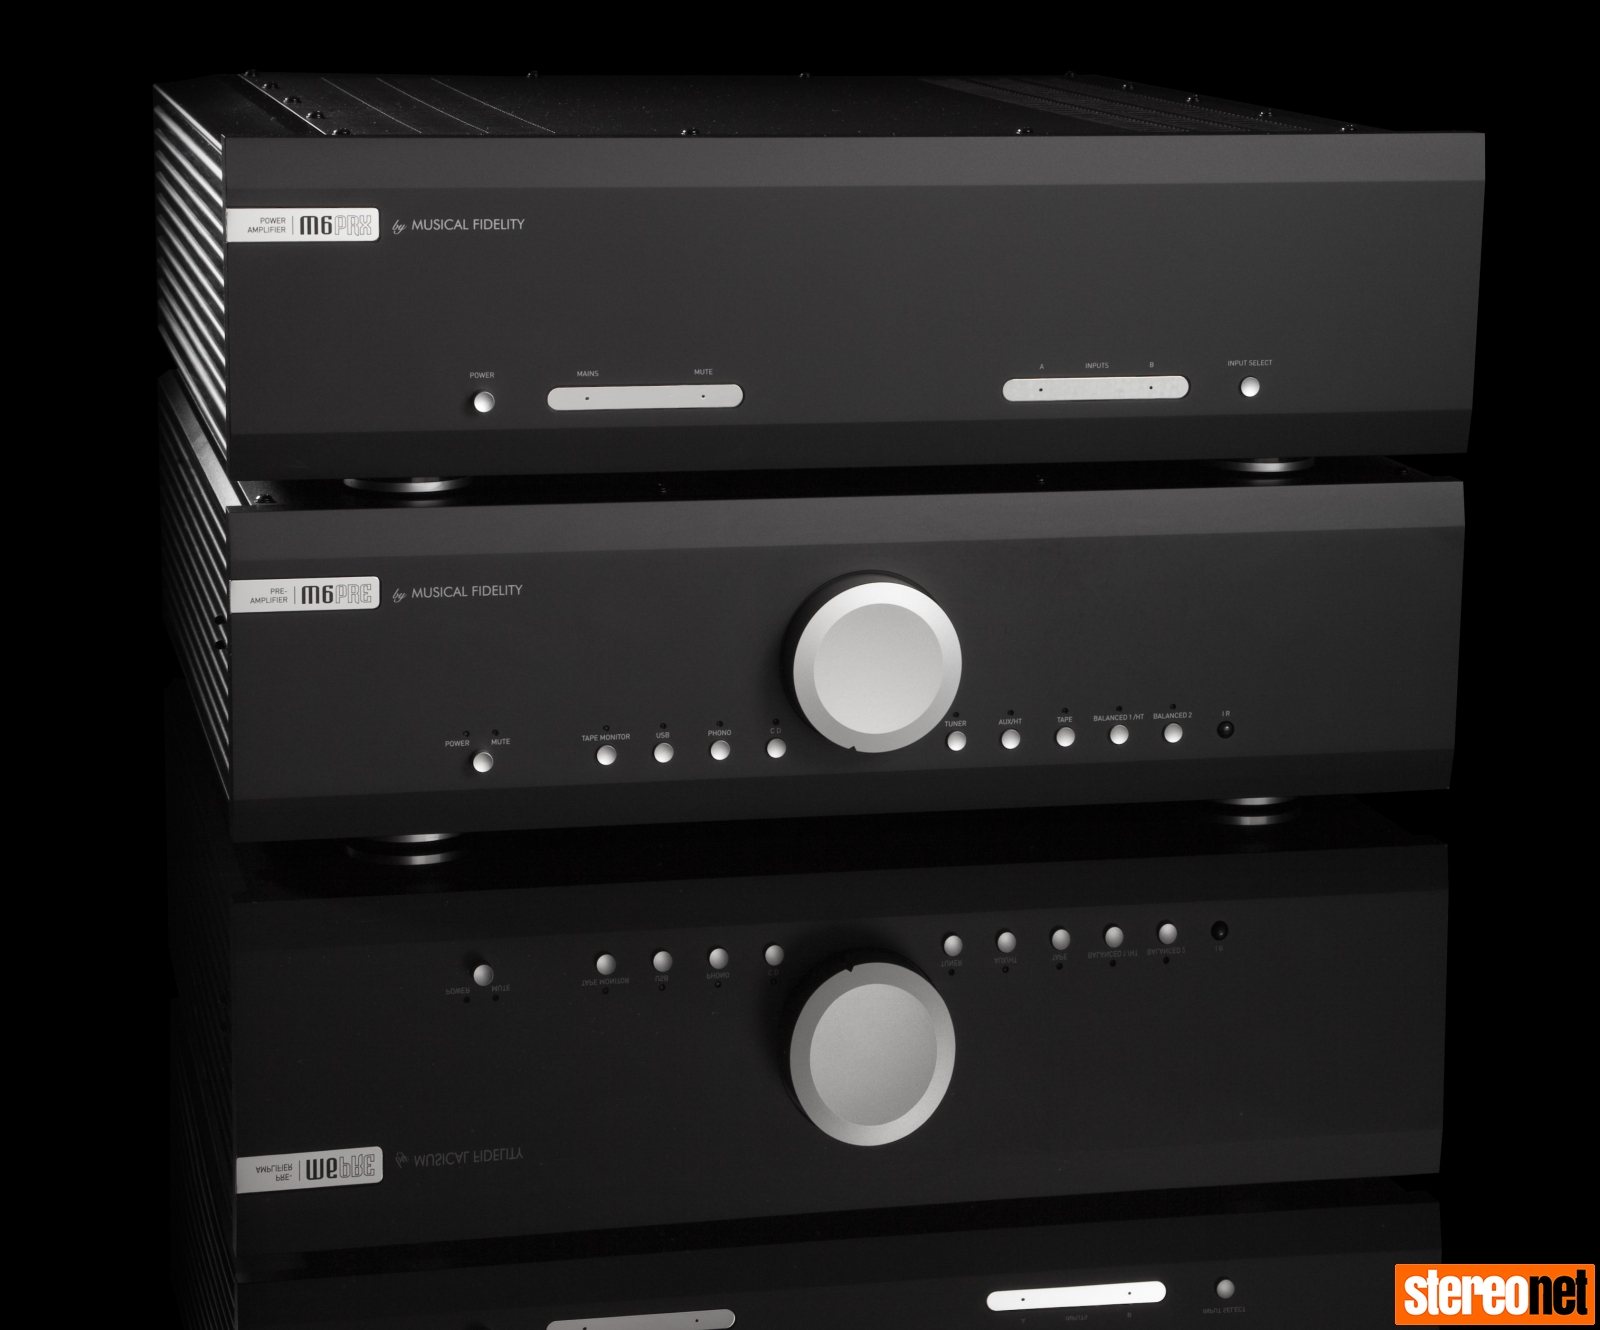 Musical Fidelity M6 PRE and M6 PRX amplifiers